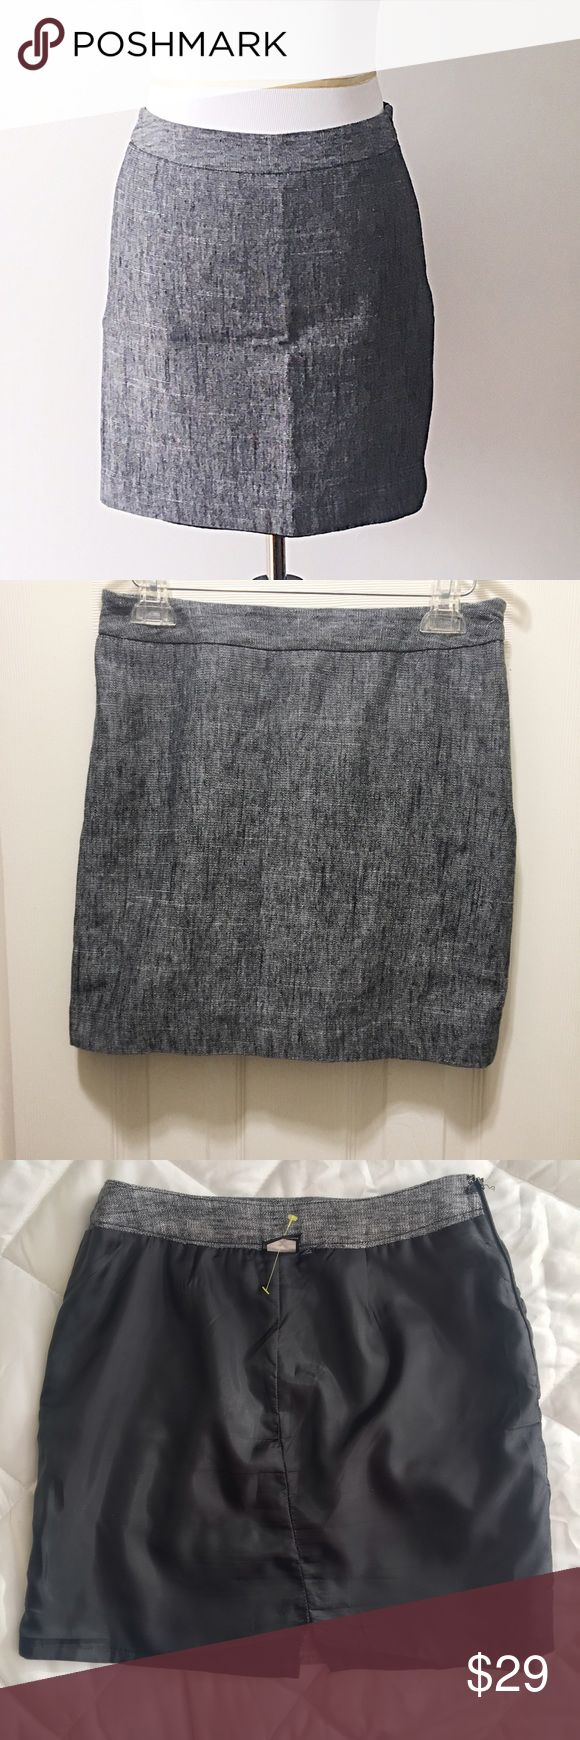 """Nine West Suits Grey Linen Skirt Size 4P Pre-loved grey skirt in great condition. Perfect for the office then a night out. Fits at the hips & has a hidden zipper on the side. It's dry cleaned and ready for you to wear!   * Composition: 53% linen + 47% cotton * Measures 16.5"""" long and 14.5"""" wide 📦 Save on shipping + take an additional 15% off if you bundle 2+ items  📫 Same day shipping M-F 🚫 NO TRADES Nine West Skirts"""